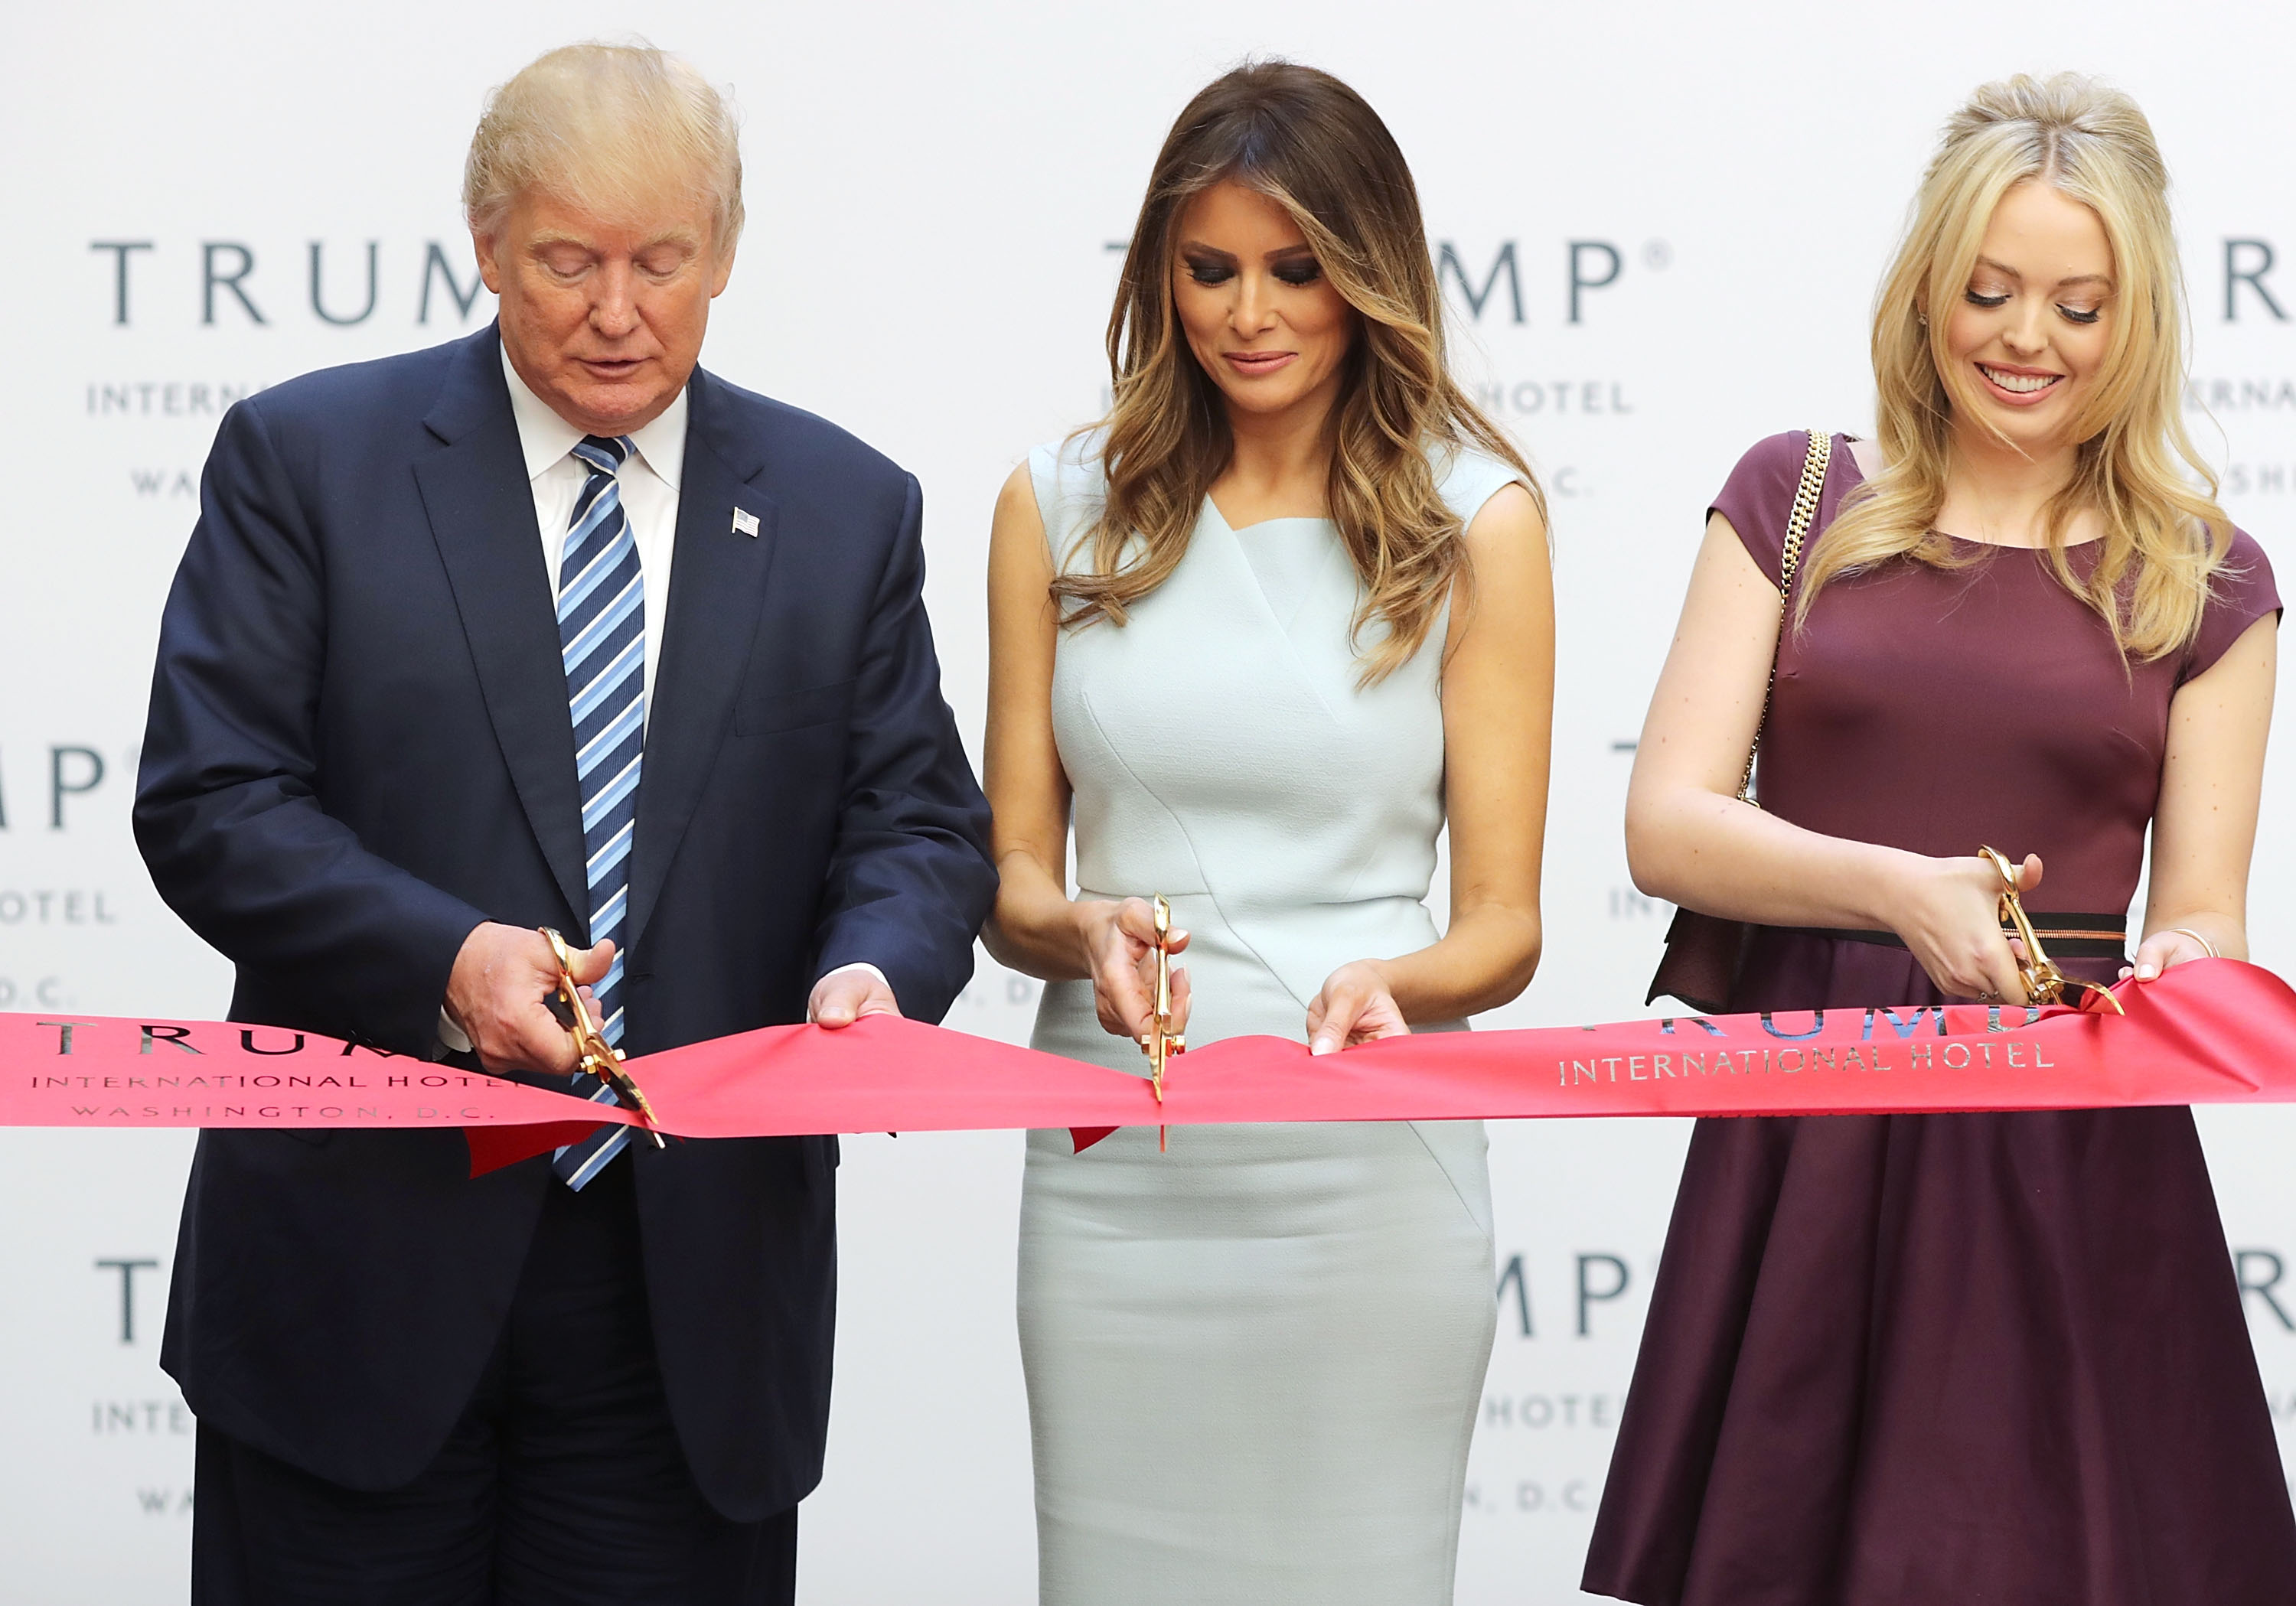 Republican presidential nominee Donald Trump, his wife Melania Trump and daughter Tiffany Trump cut the ribbon at the new Trump International Hotel October 26, 2016 in Washington, DC. (Chip Somodevilla/Getty Images)